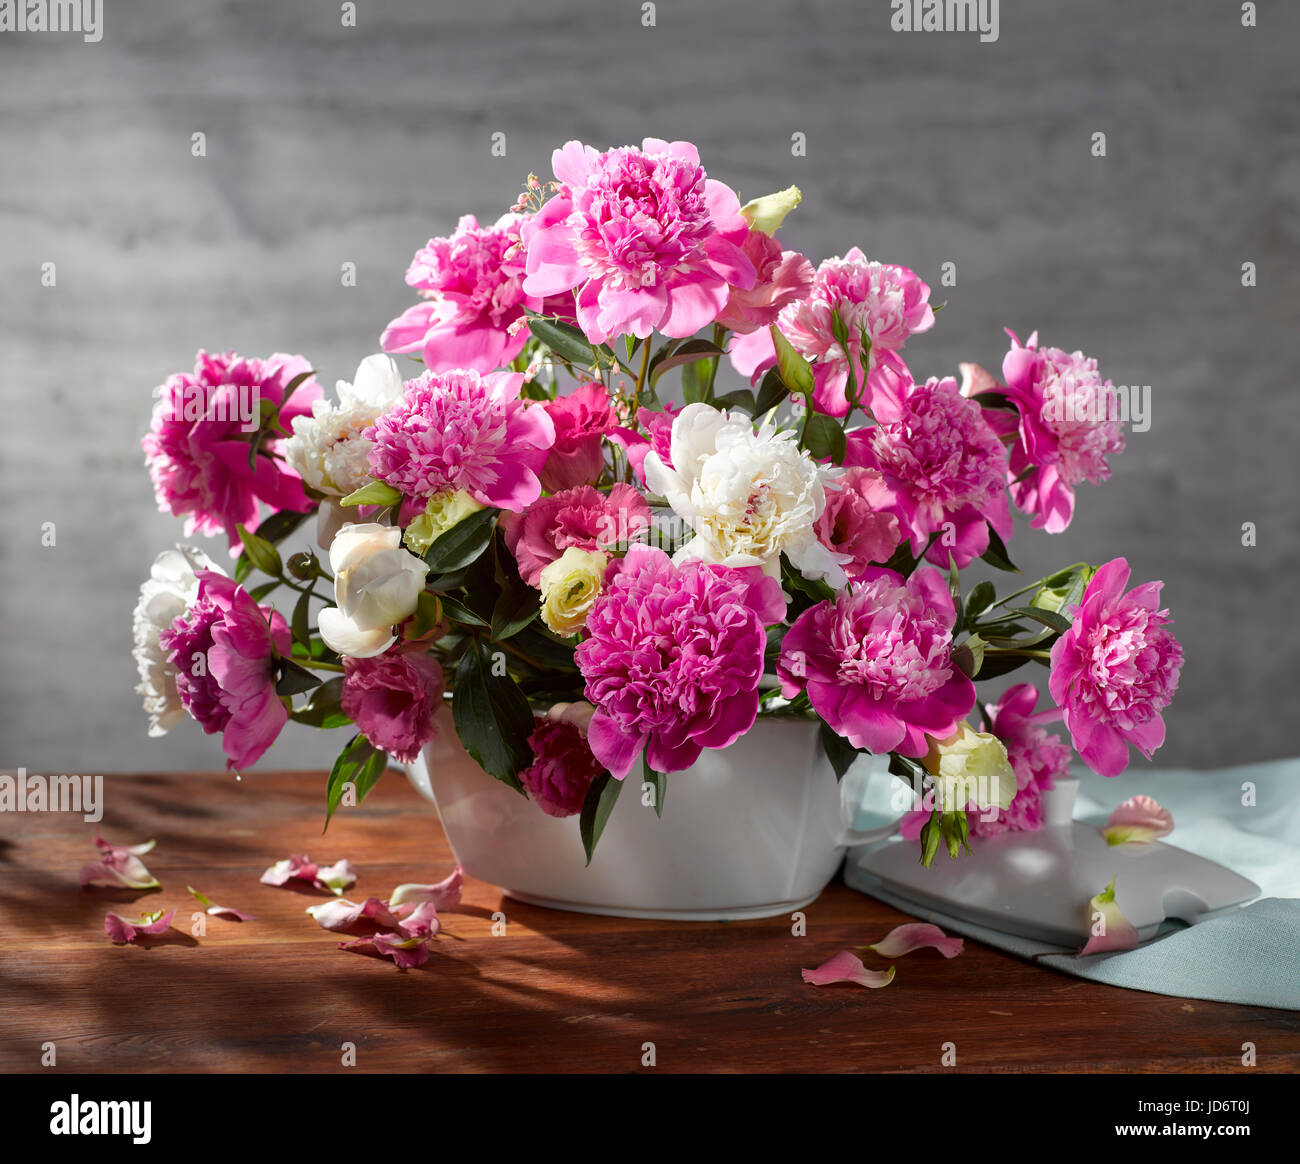 Bouquet of flowers with peonies. - Stock Image